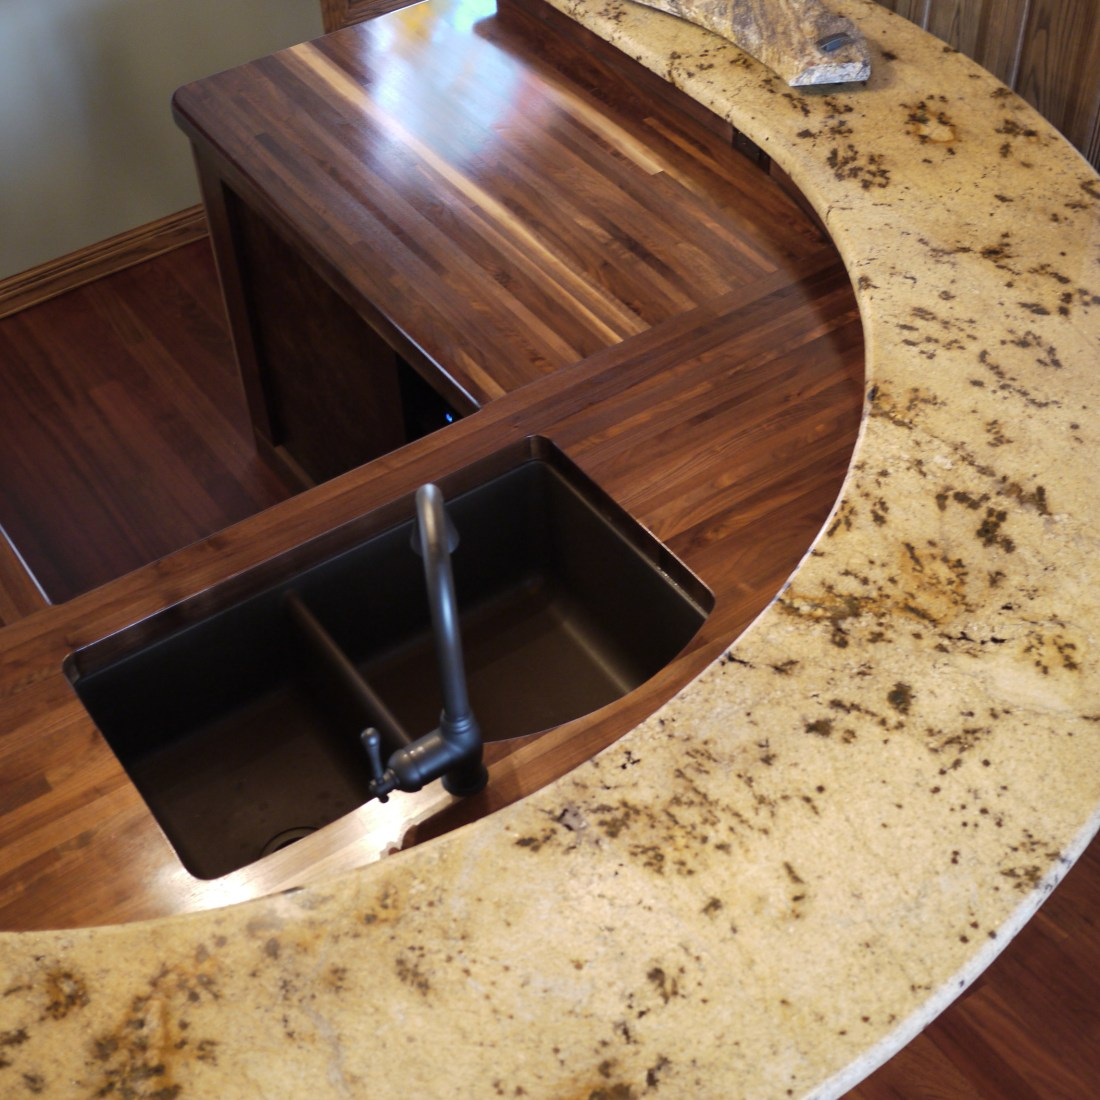 Walnut glue up countertop with variety of wood grain